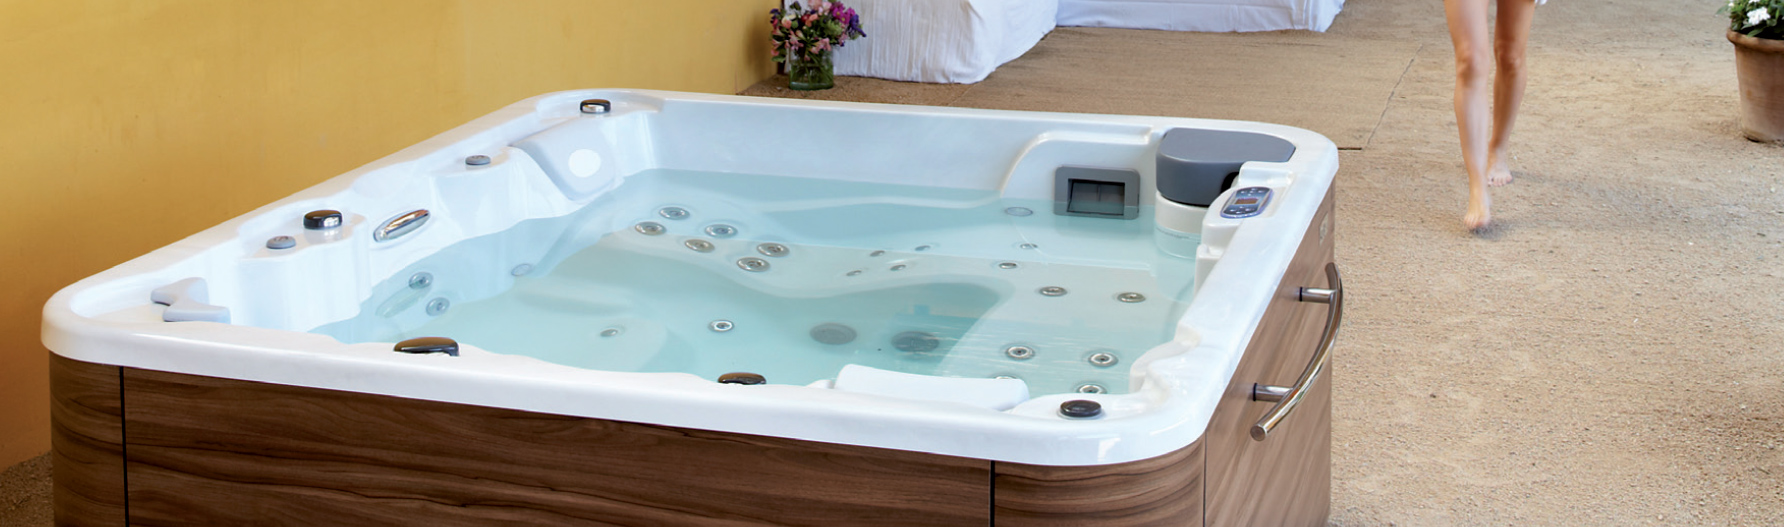 prix jacuzzi interieur spa jacuzzij client with prix jacuzzi interieur le choix du jacuzzi il. Black Bedroom Furniture Sets. Home Design Ideas